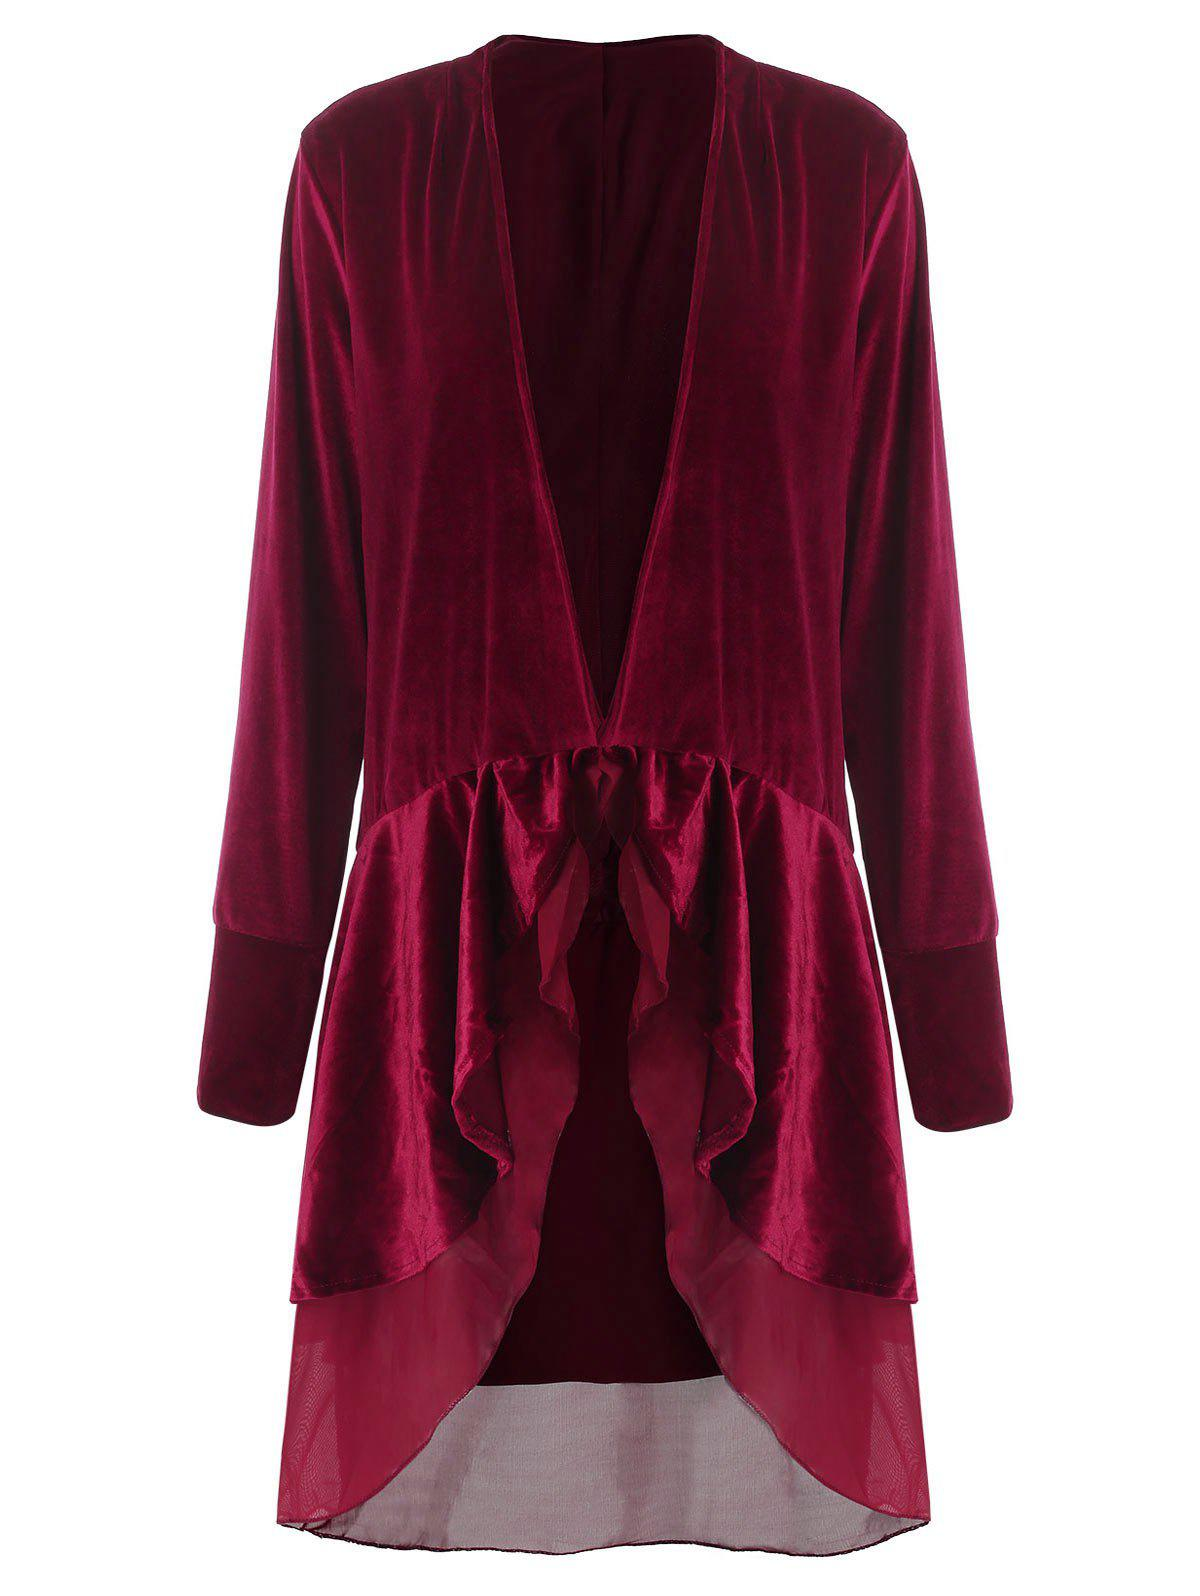 Shop Stylish Long Sleeve Swingy Velvet Women's Coat